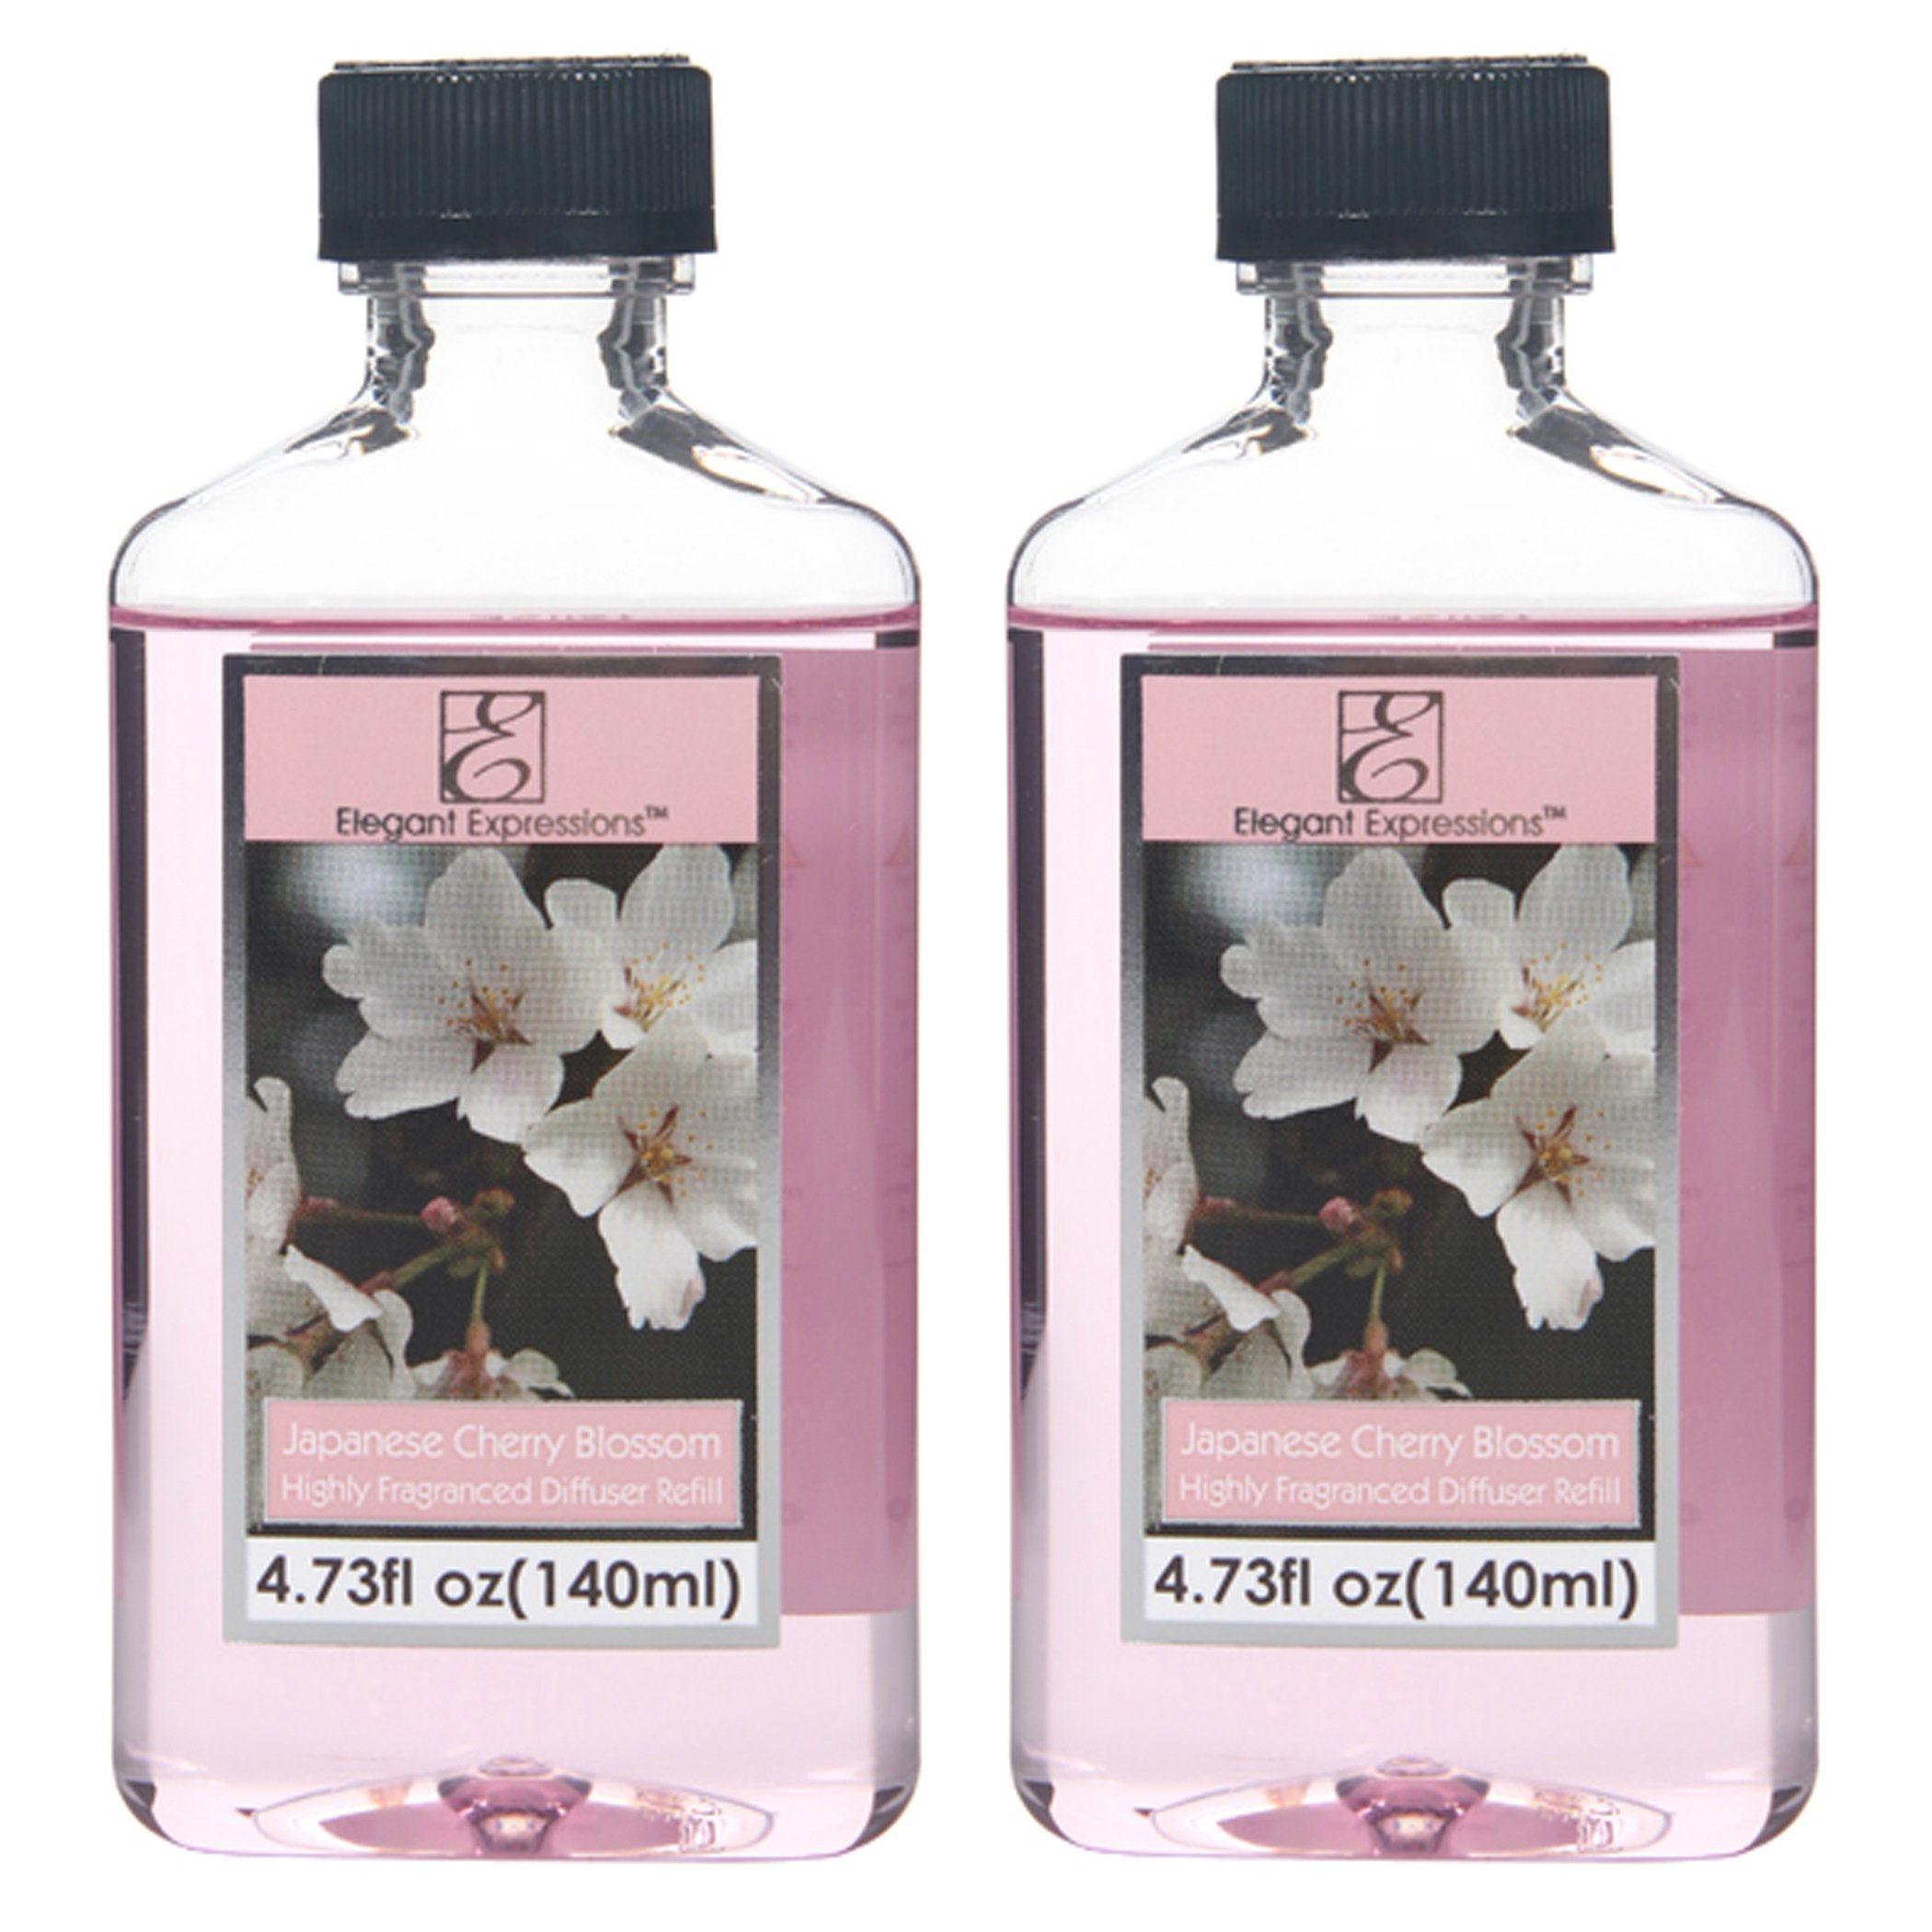 Aromatherapy Hosley® Premium Highly Scented, Japanese Cherry Blossom 2 Large Bottles 140ml (4.73 fl oz) Each, reed Diffuser Refill Oi-Set of 2 / 140ml Each - Made in USA.FREE SHIPPING. BULK BUY